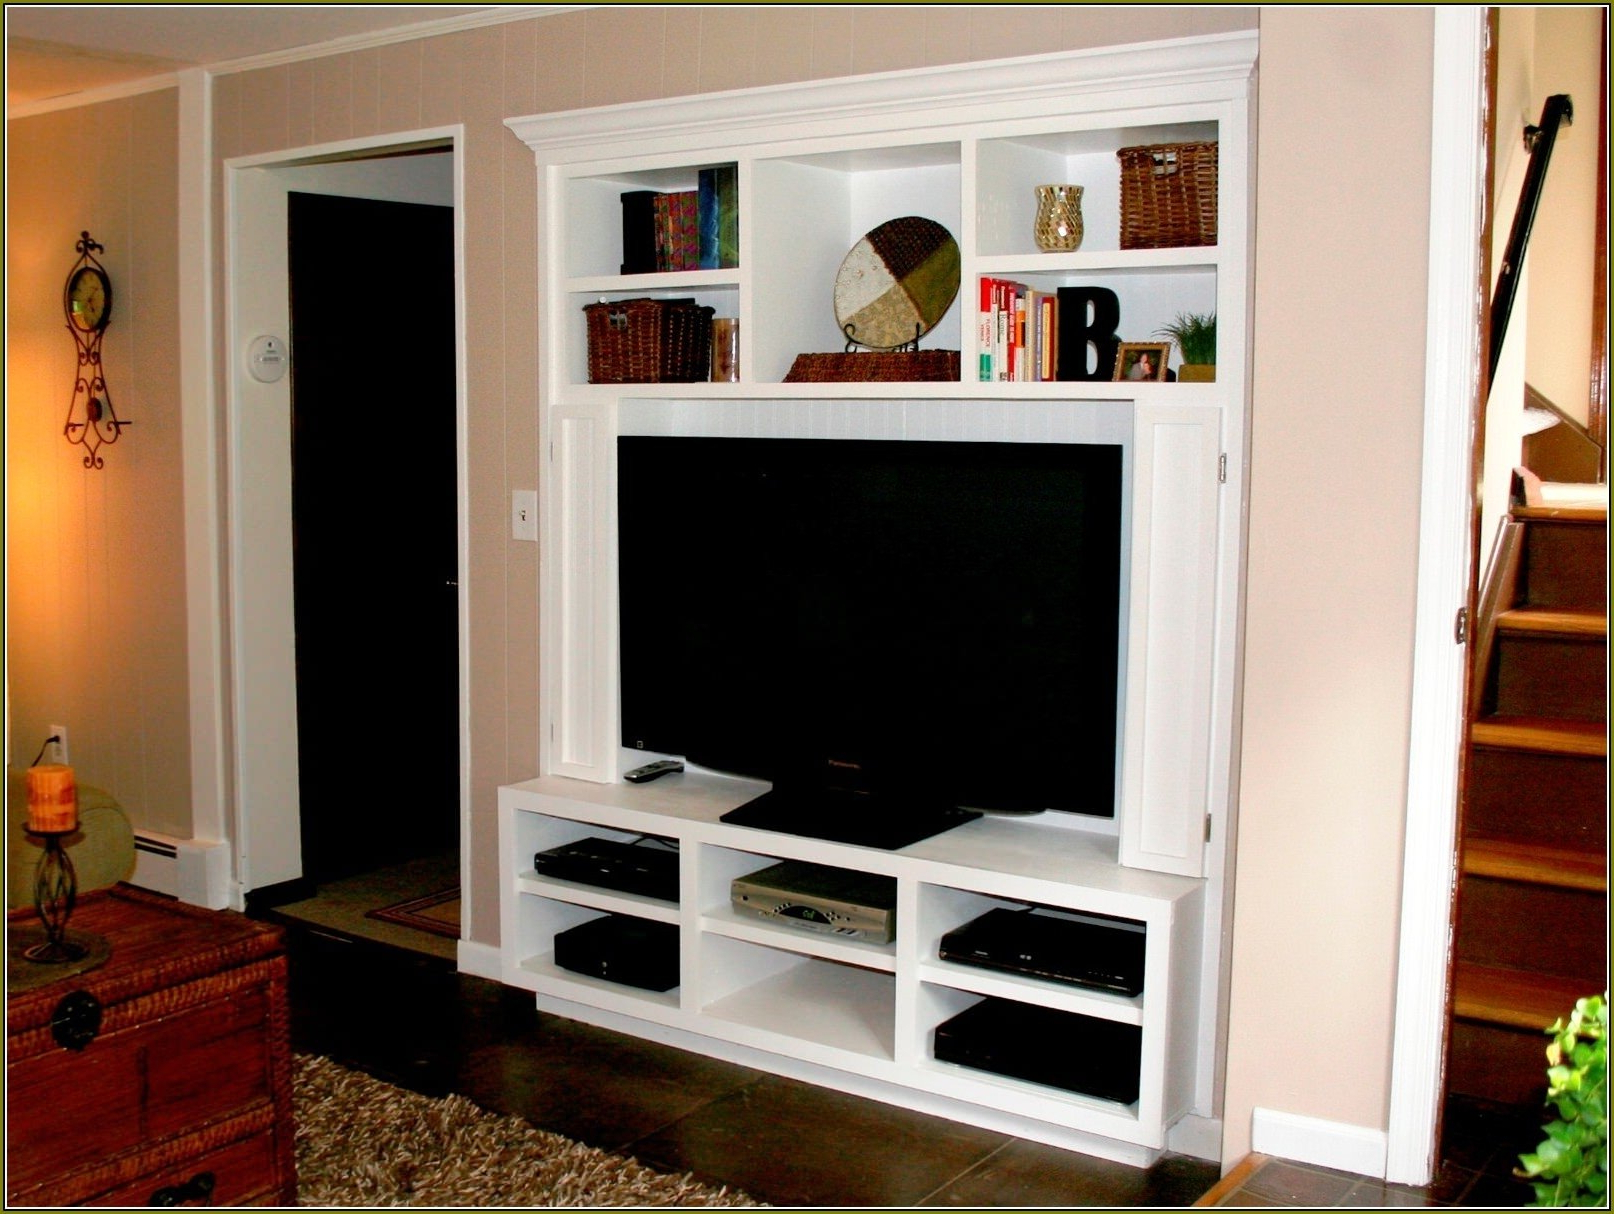 Wall Mounted Tv Cabinets For Flat Screens With Doors With Regard To 2017 Wall Mounted Tv Cabinets For Flat Screens — Allin The Details : Tips (View 2 of 20)